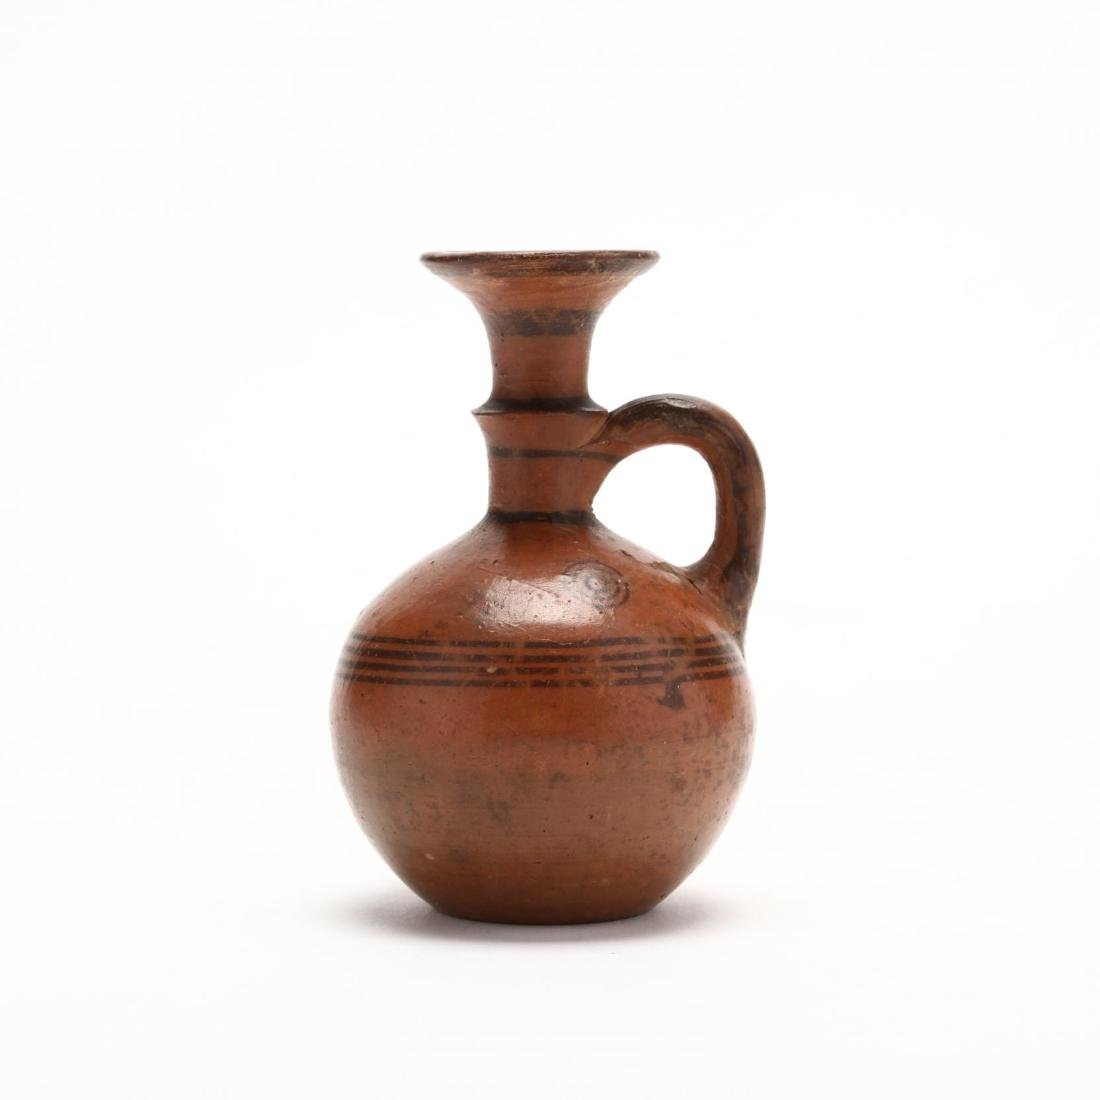 Cypriot Late Bronze Age Juglet - 3